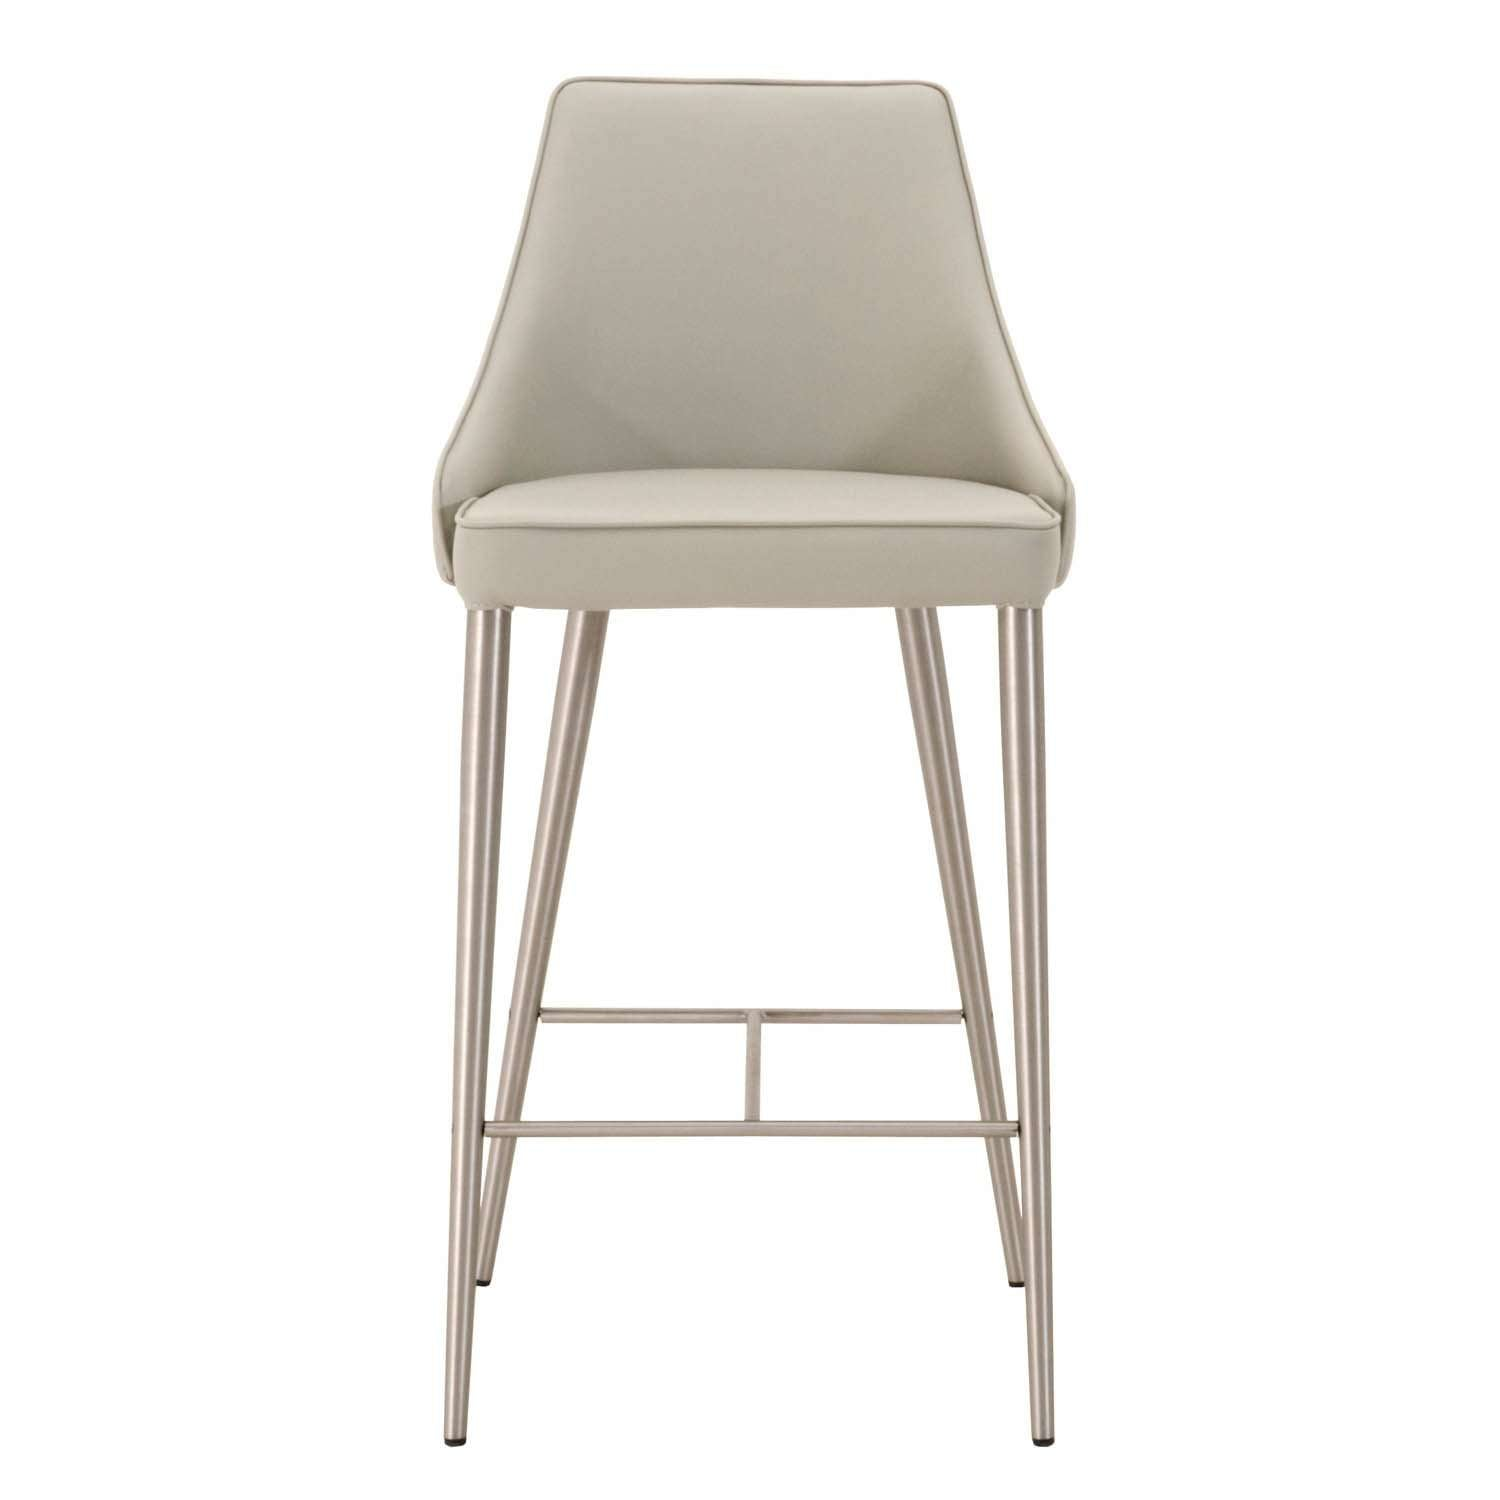 Star International Furniture-Ivy Barstool-Barstool-MODTEMPO